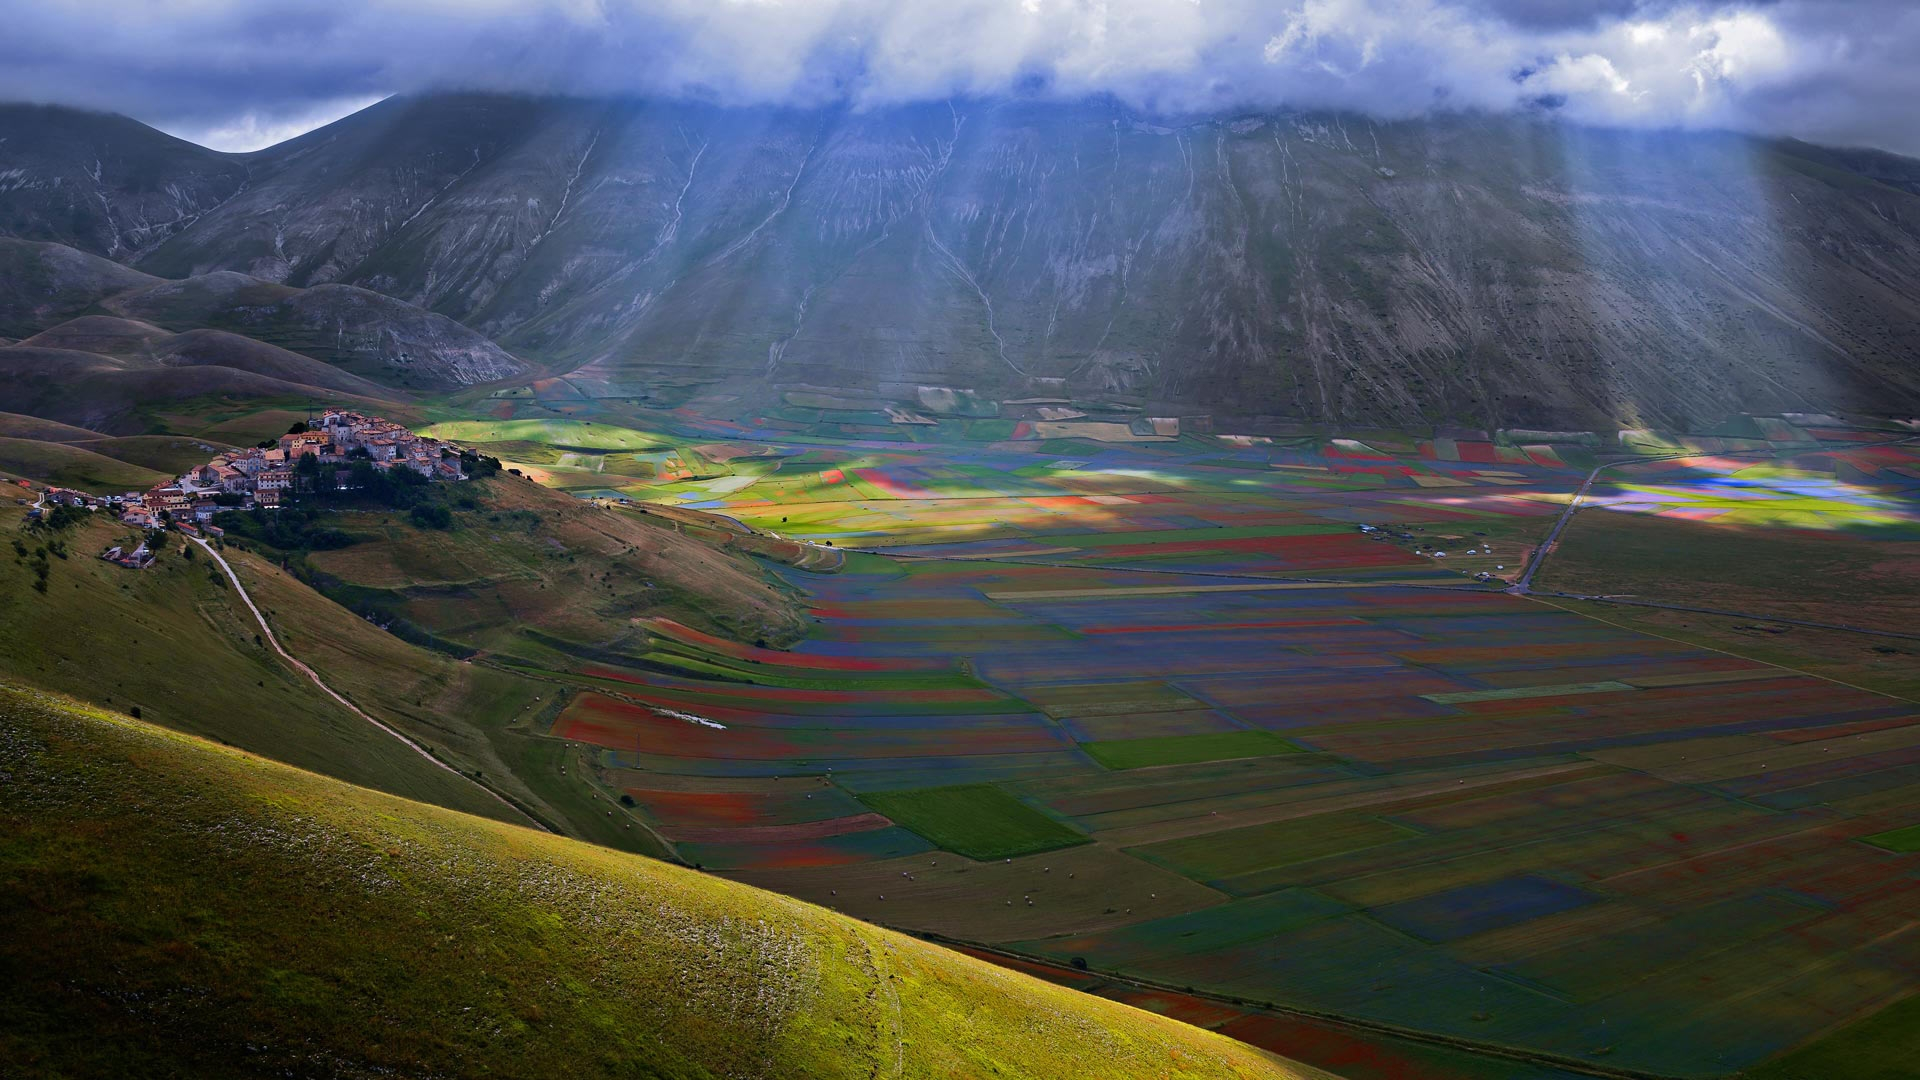 The-village-of-Castelluccio-above-the-Piano-Grande-Umbria-Italy-20180402.jpg